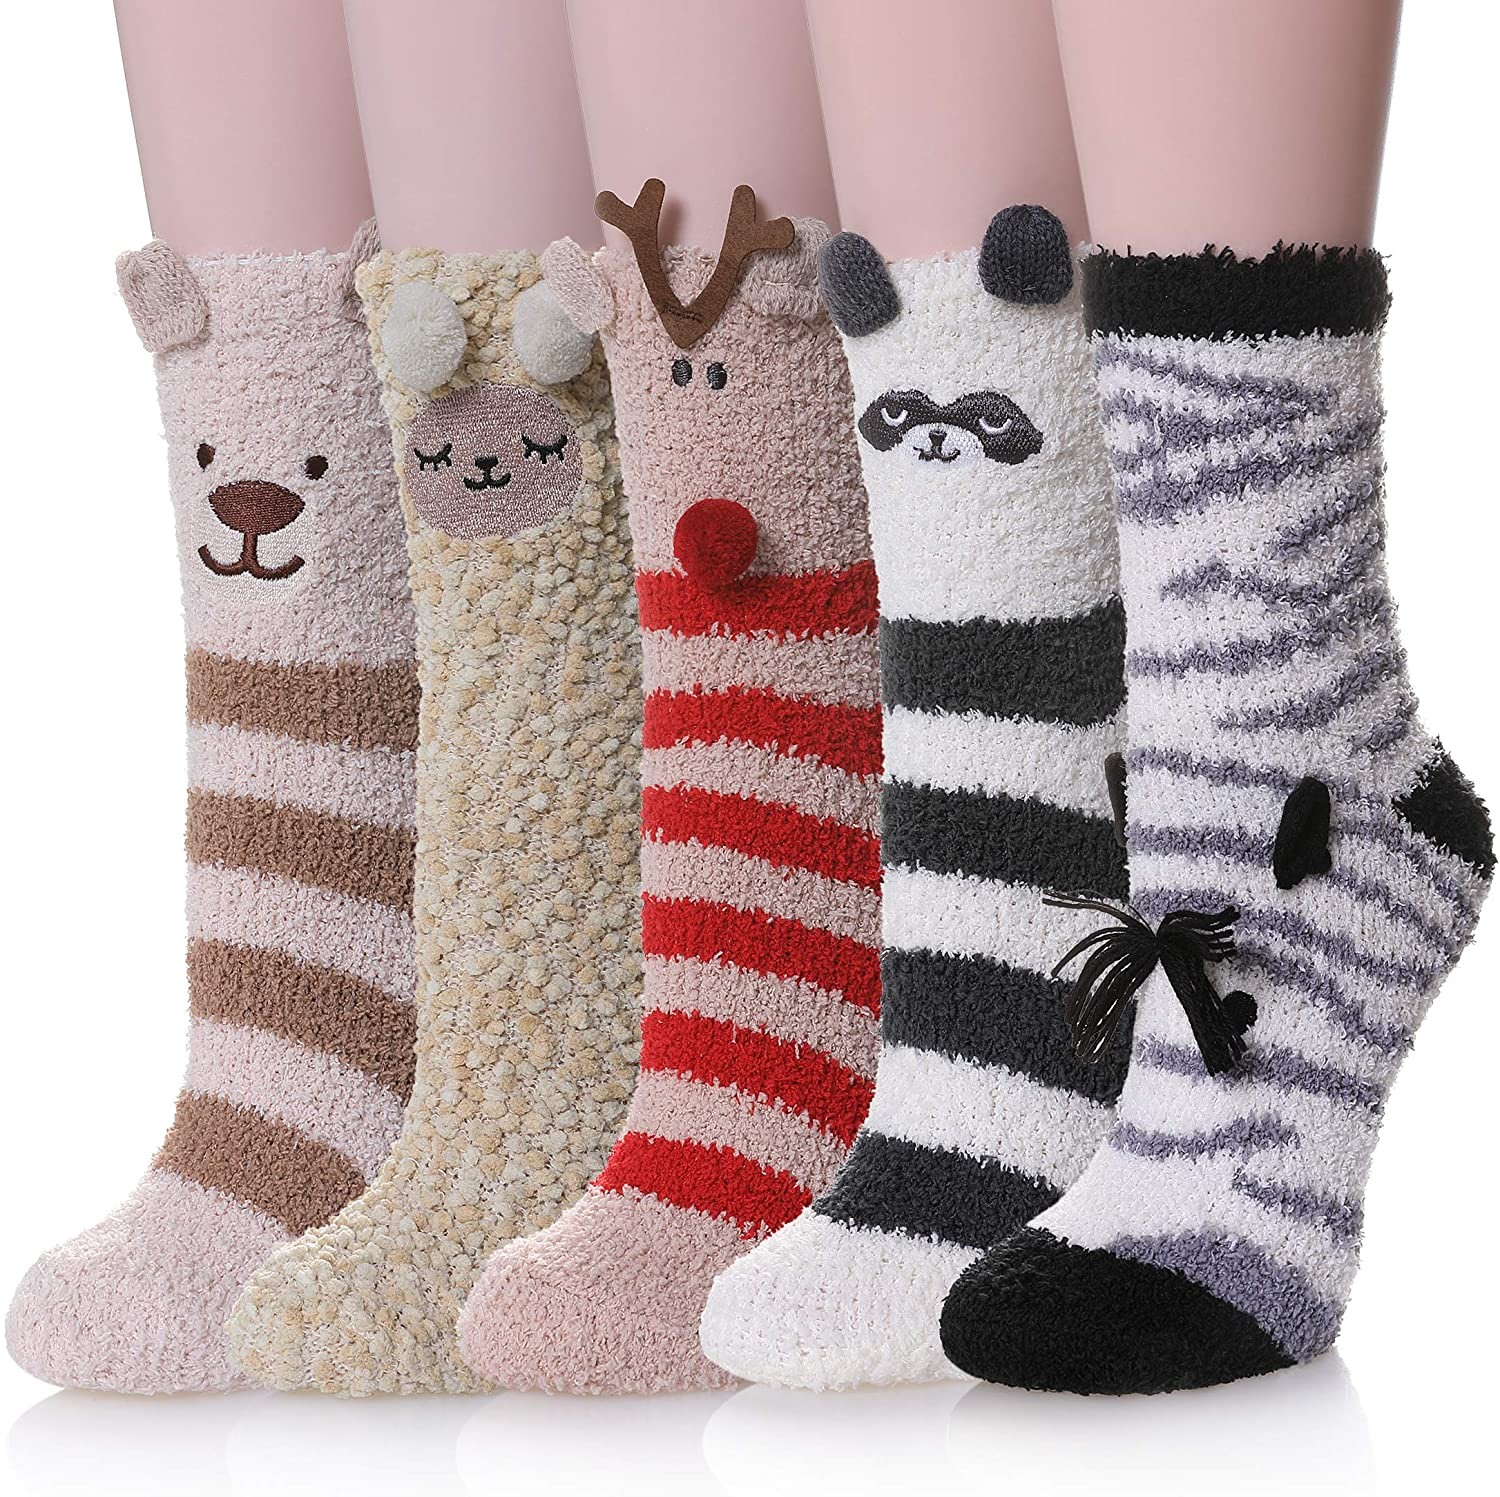 PUREMART Womens Slipper Socks Soft Warm Coral Fleece Fuzzy Fluffy Socks For Autumn Winter, 5 Pairs